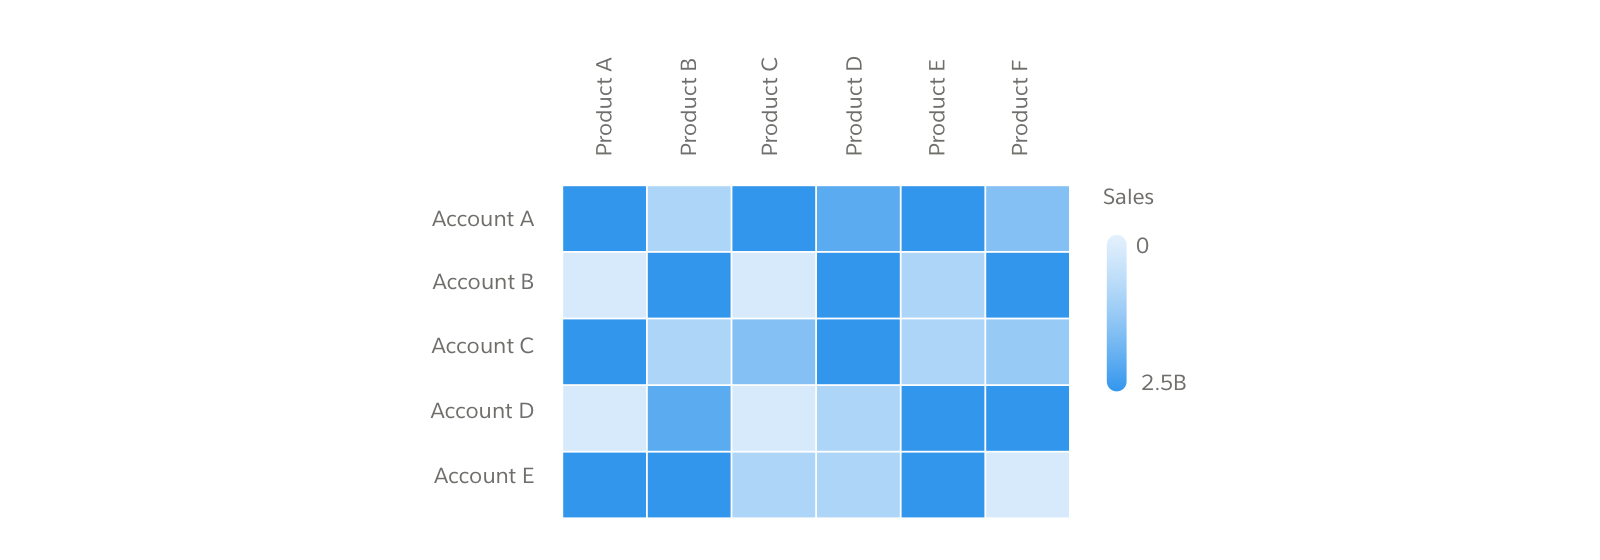 A Heatmap displaying Sales by Account and Product